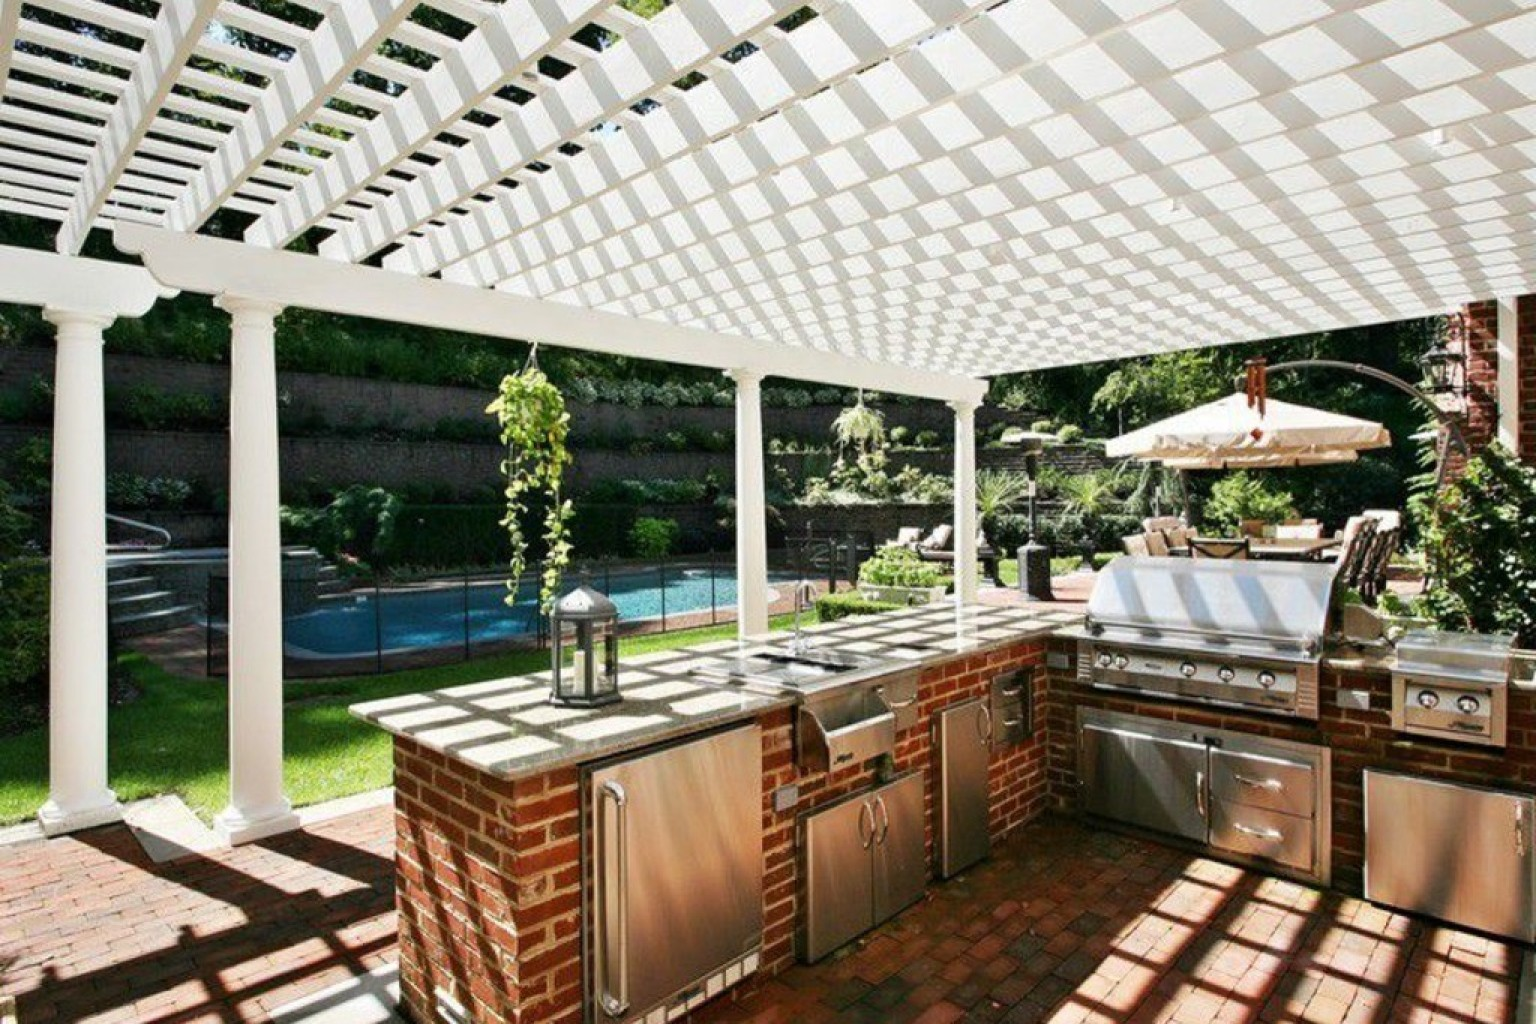 White Pergola above Brick Counter and Barbeque Set in Stunning Outdoor Kitchen Plans with Brick Flooring